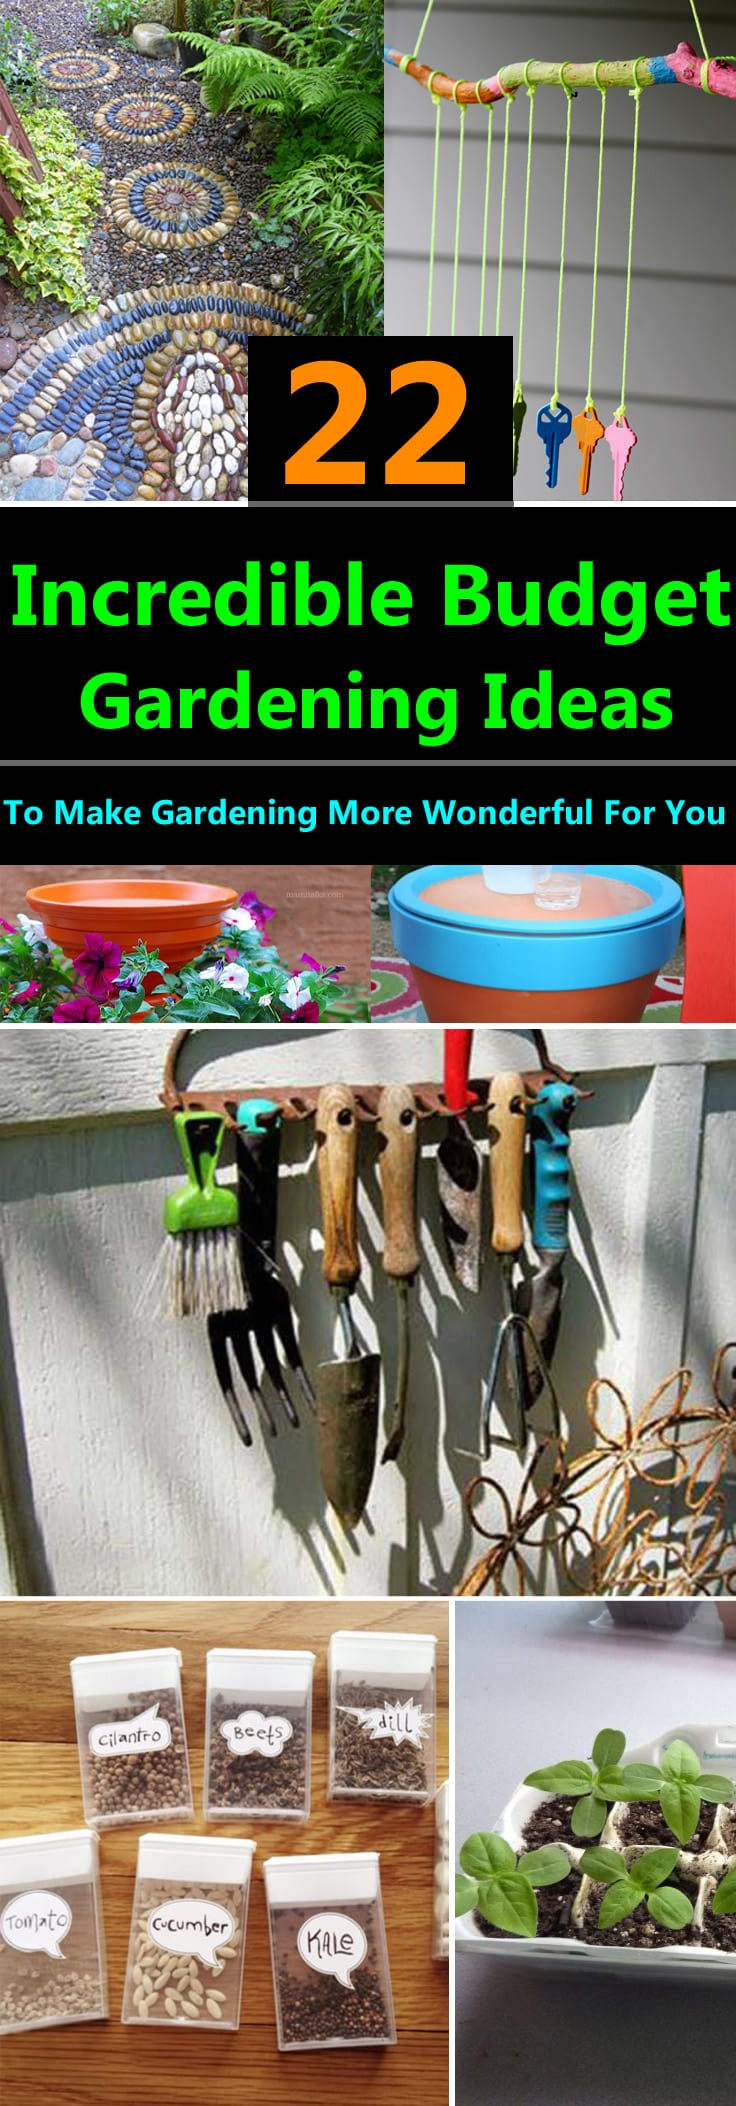 Cheap, Easy And Functional DIY Garden Ideas On A Budget Thatu0027ll Make  Gardening